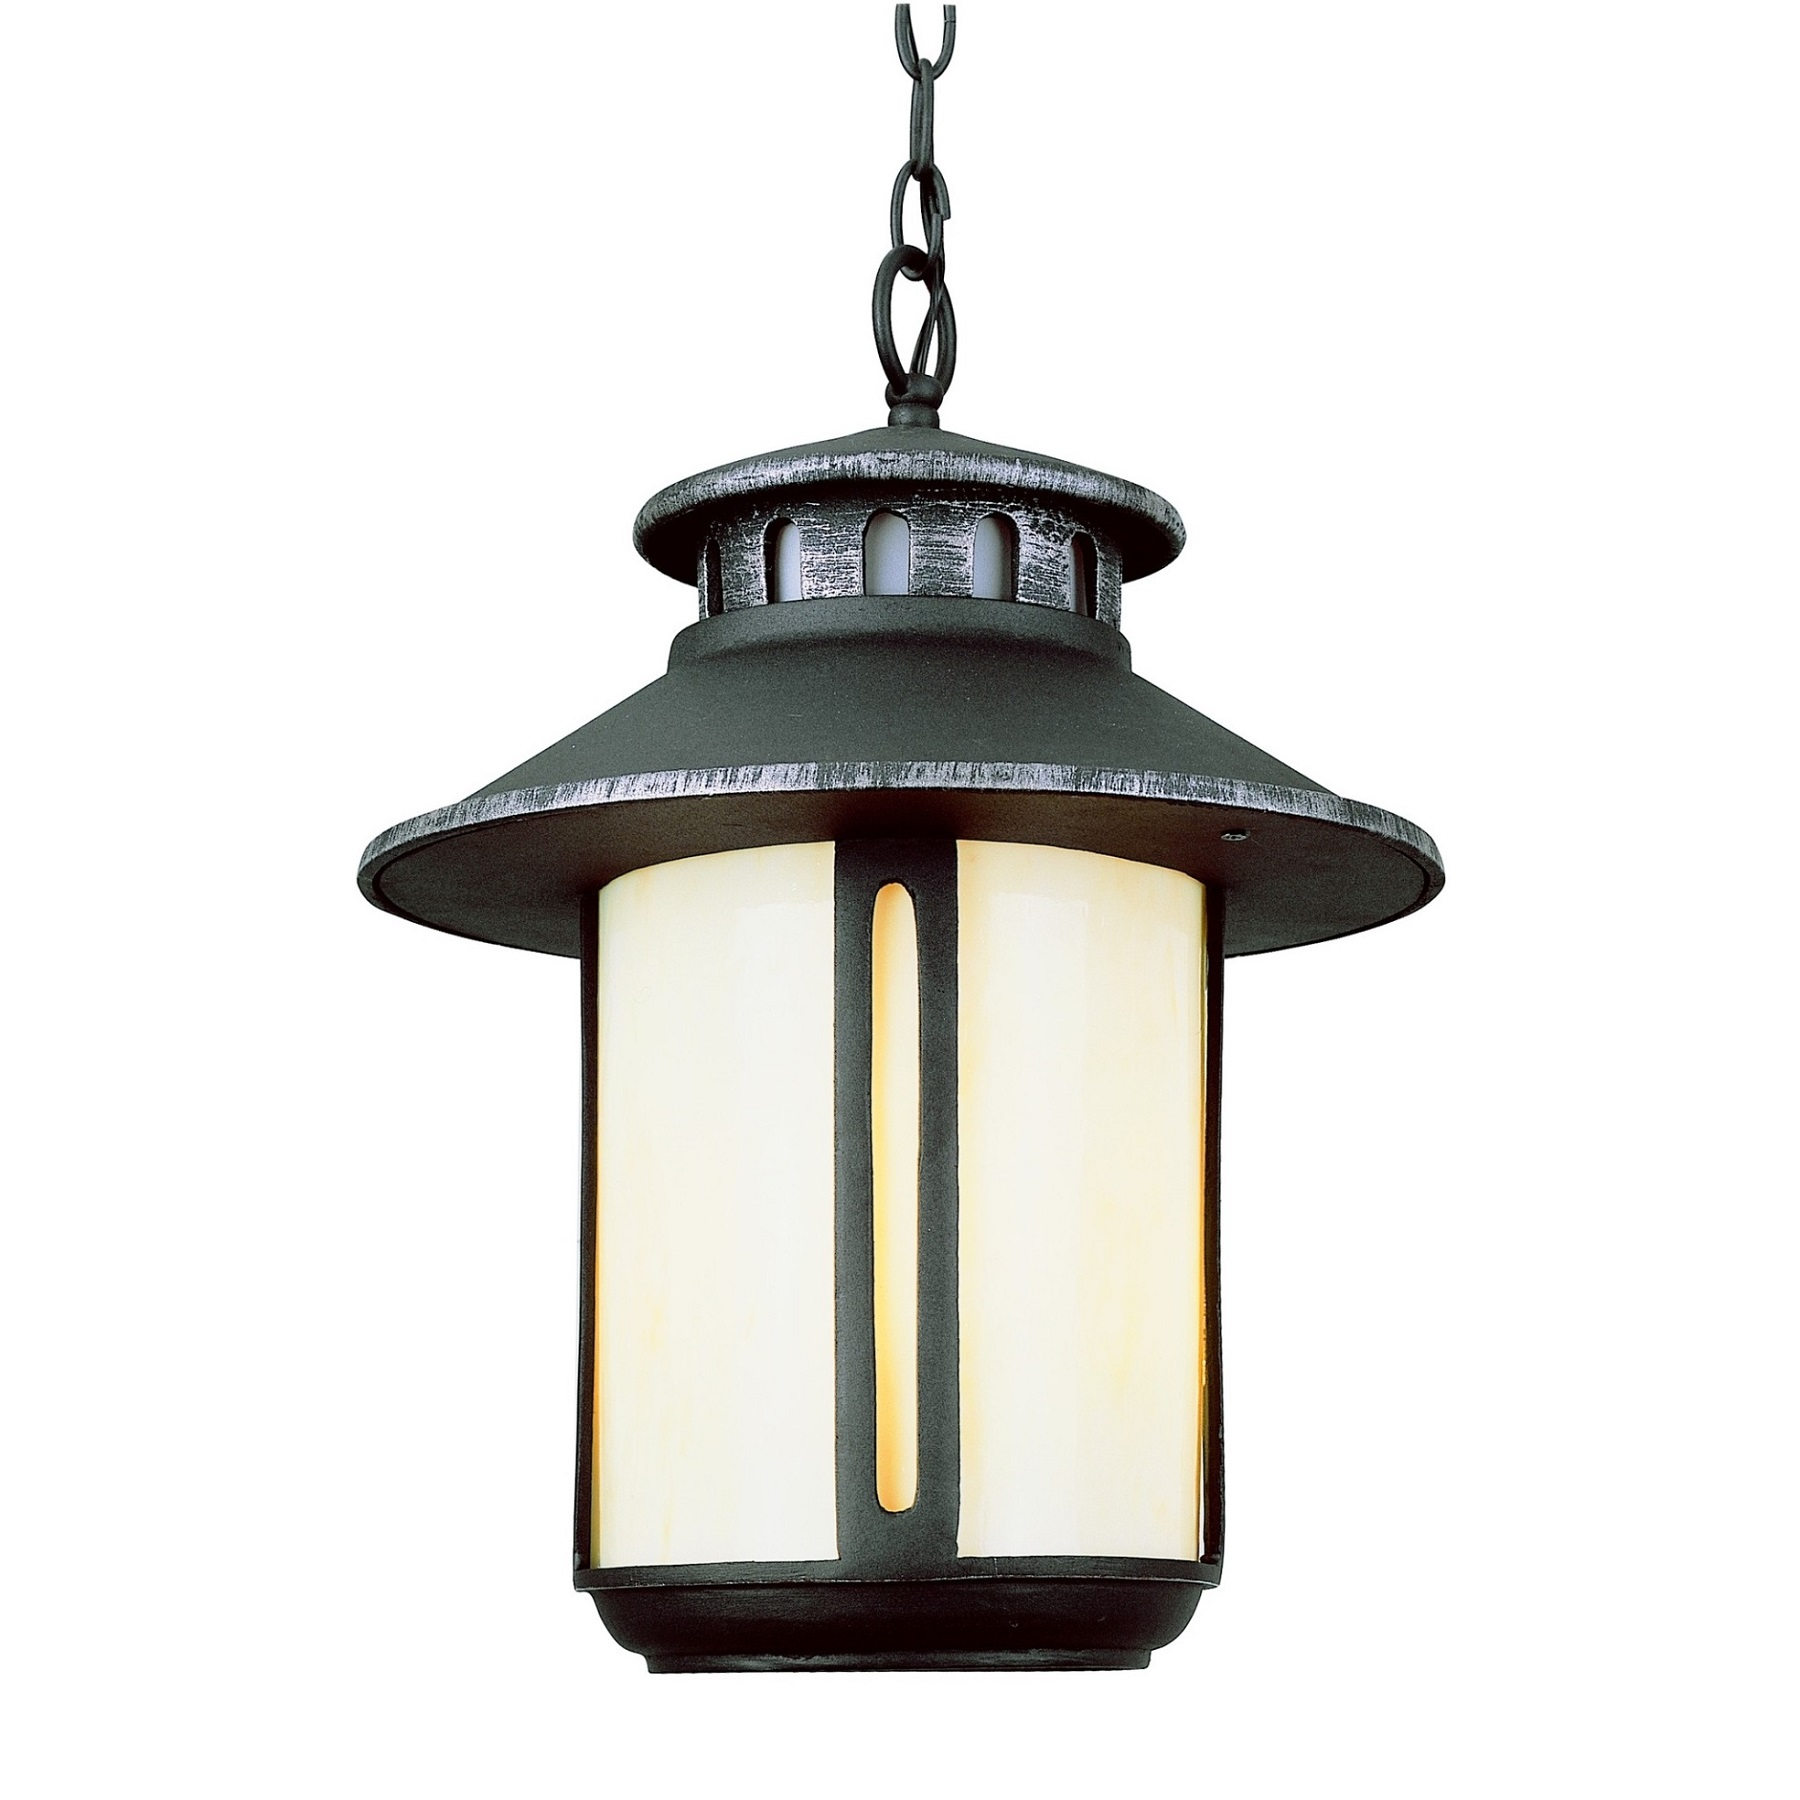 transglobe lighting outdoor 2 light hanging lantern with glass l